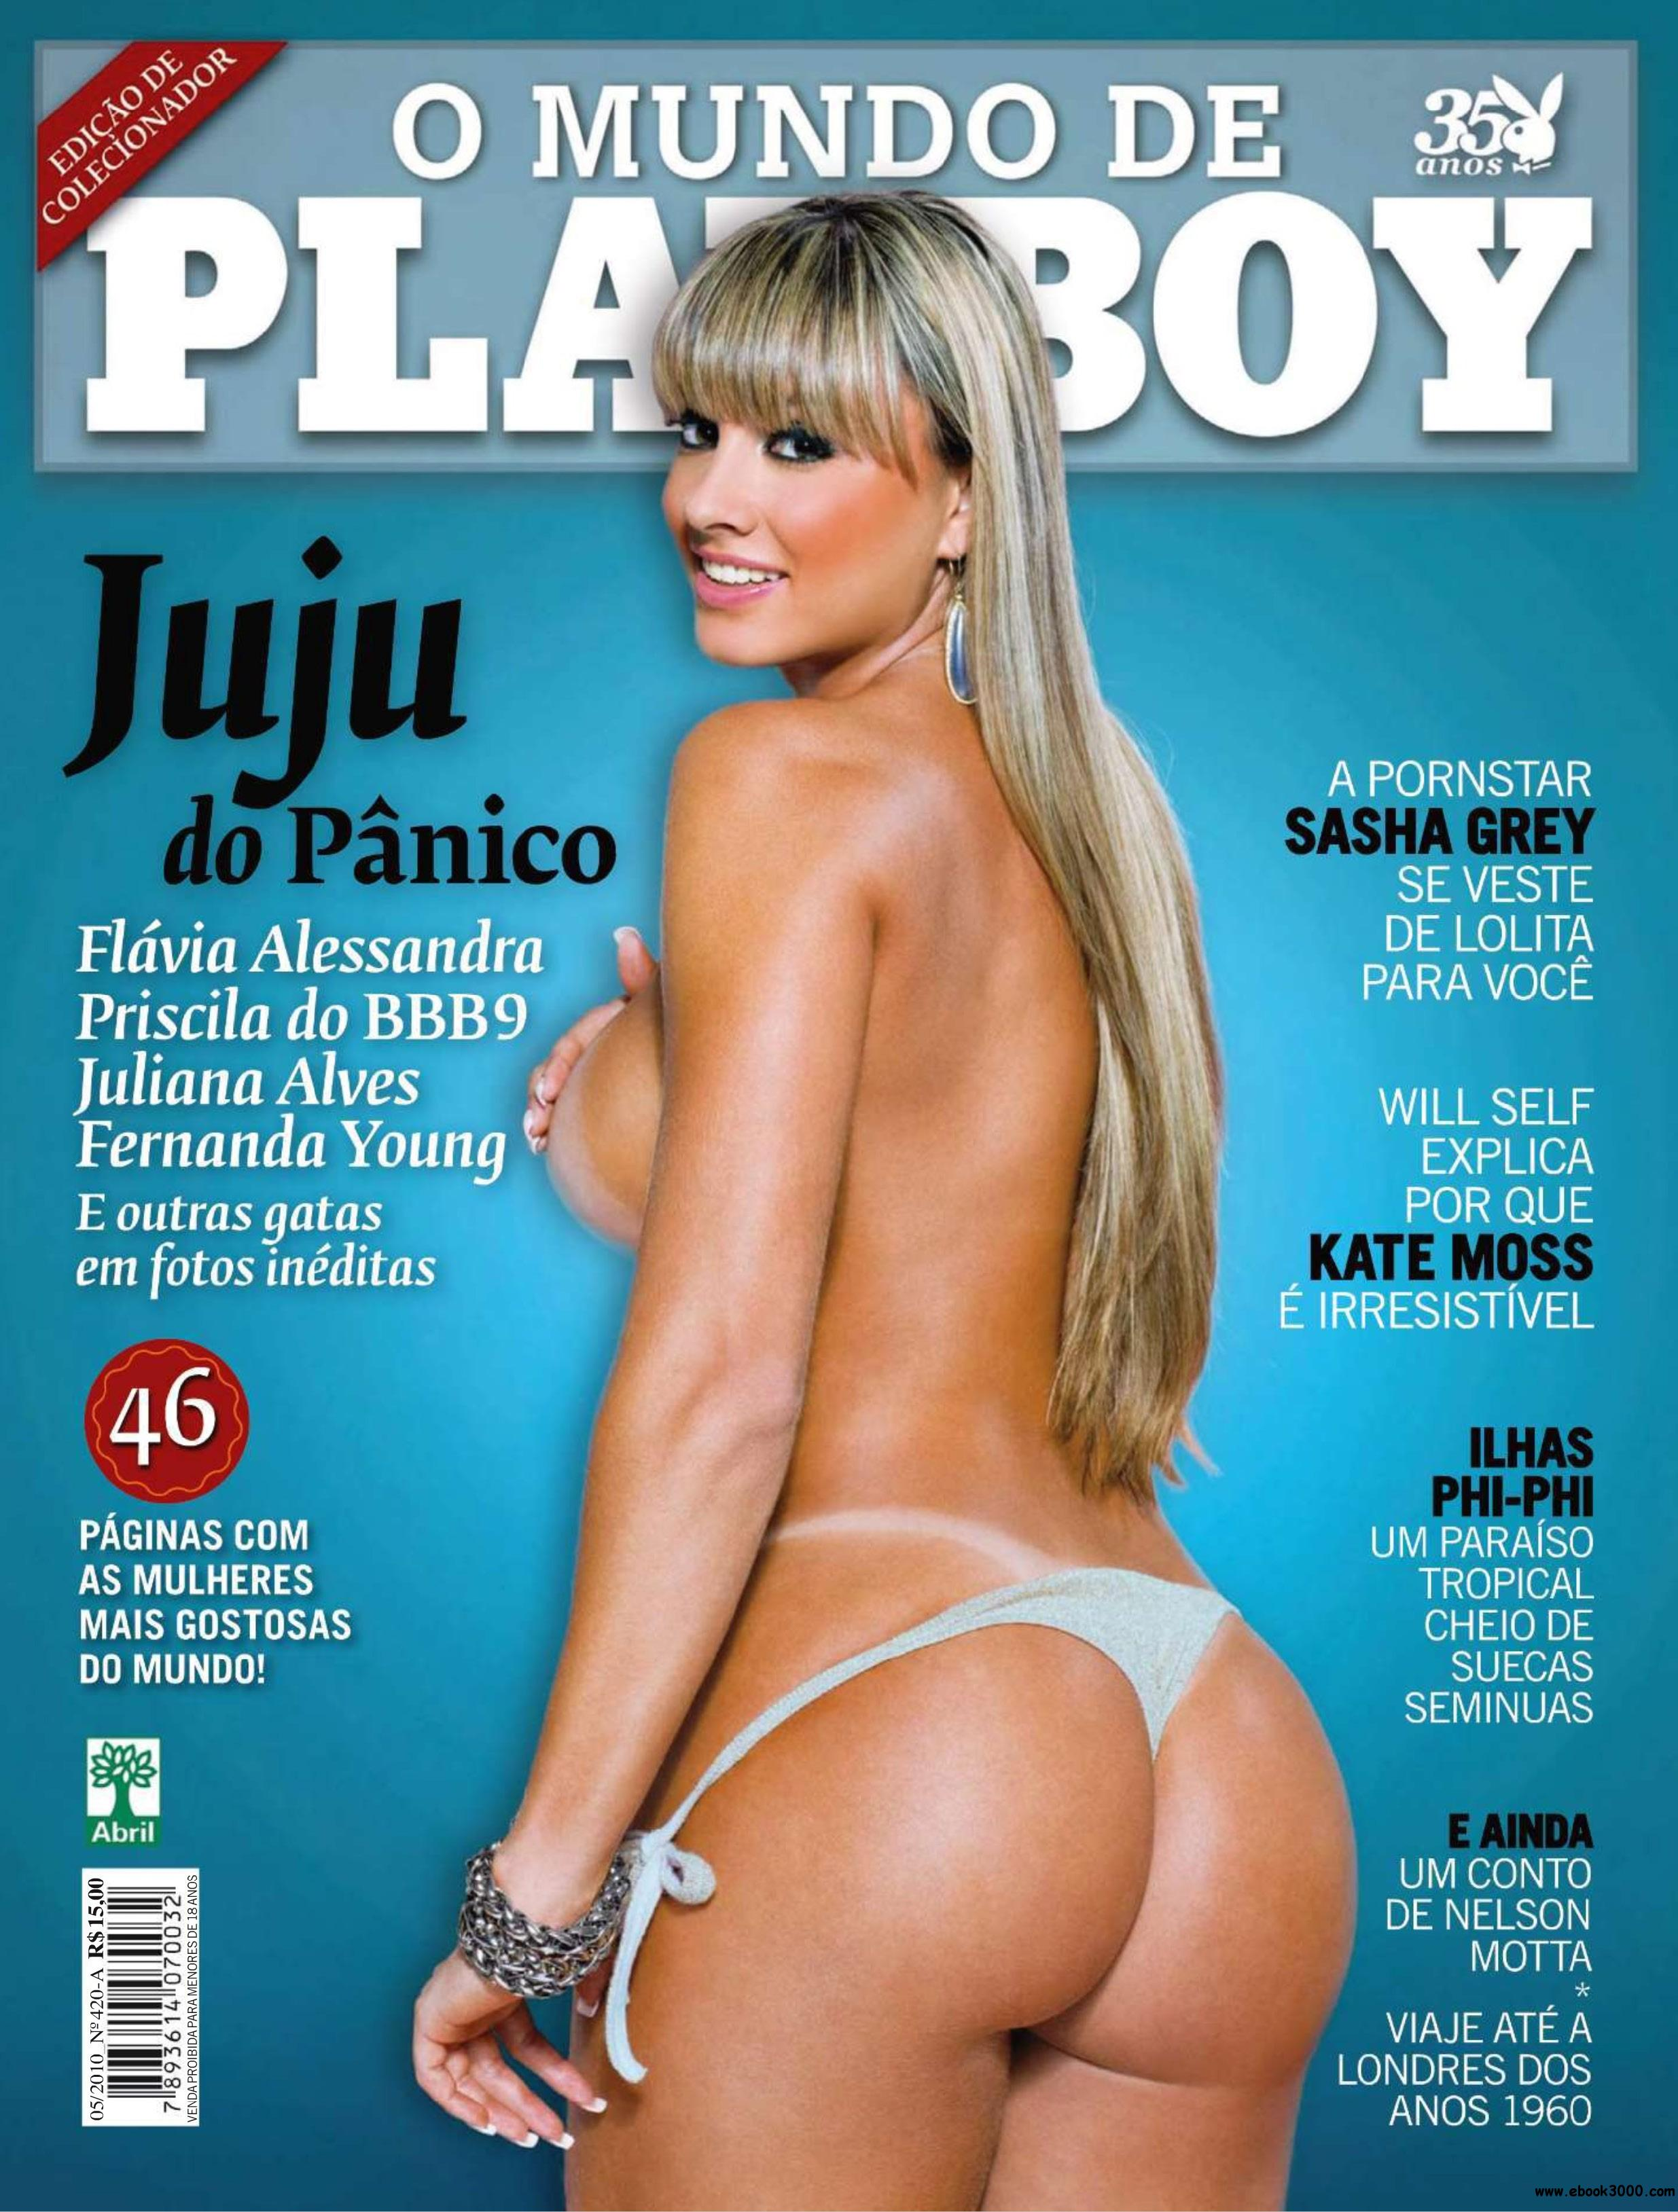 Playboy Brazil Especial Edition - O Mundo de Playboy Vol 10 2010 free download